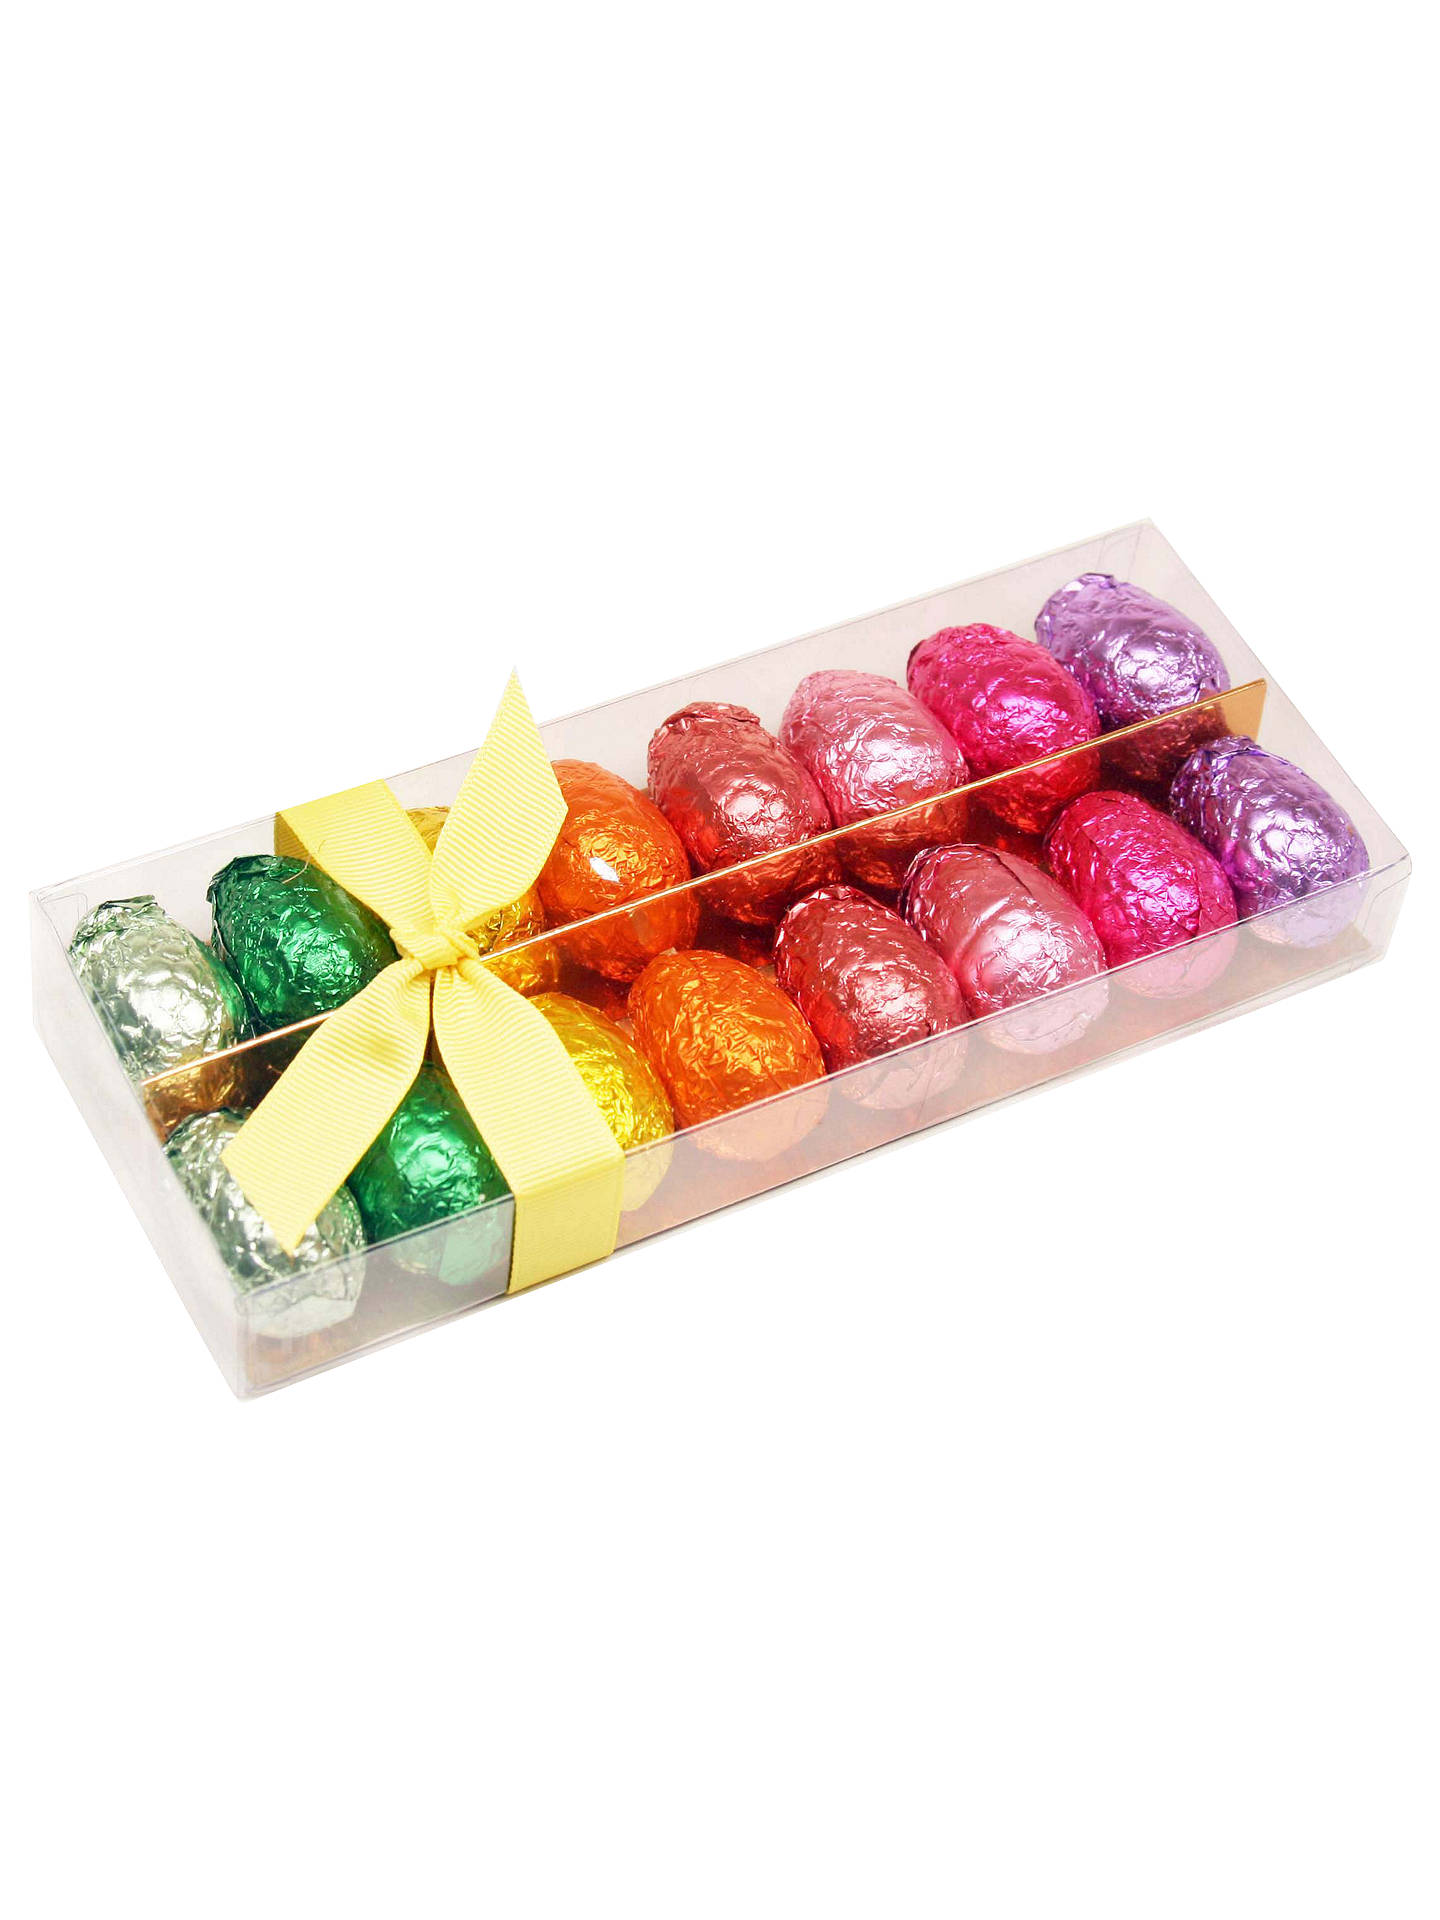 BuyRainbow Foiled Chocolate Egg Selection, 200g Online at johnlewis.com